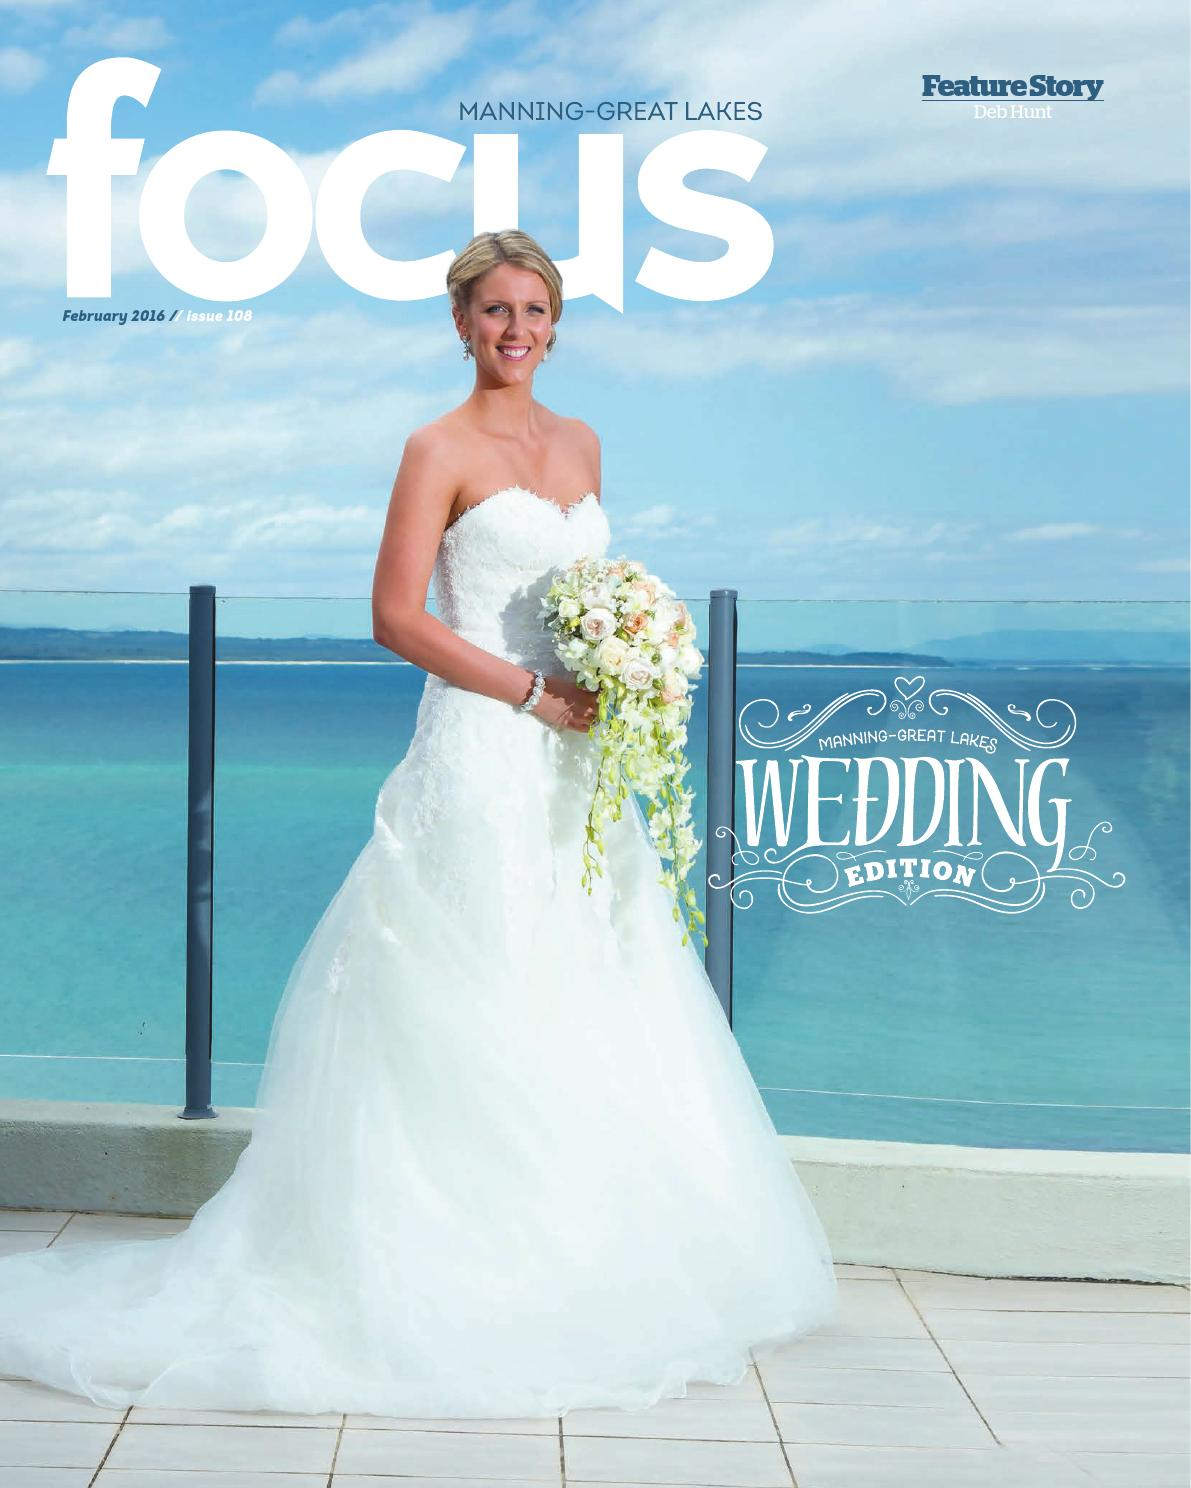 Manning-Great Lakes Focus i108 by Focus - issuu